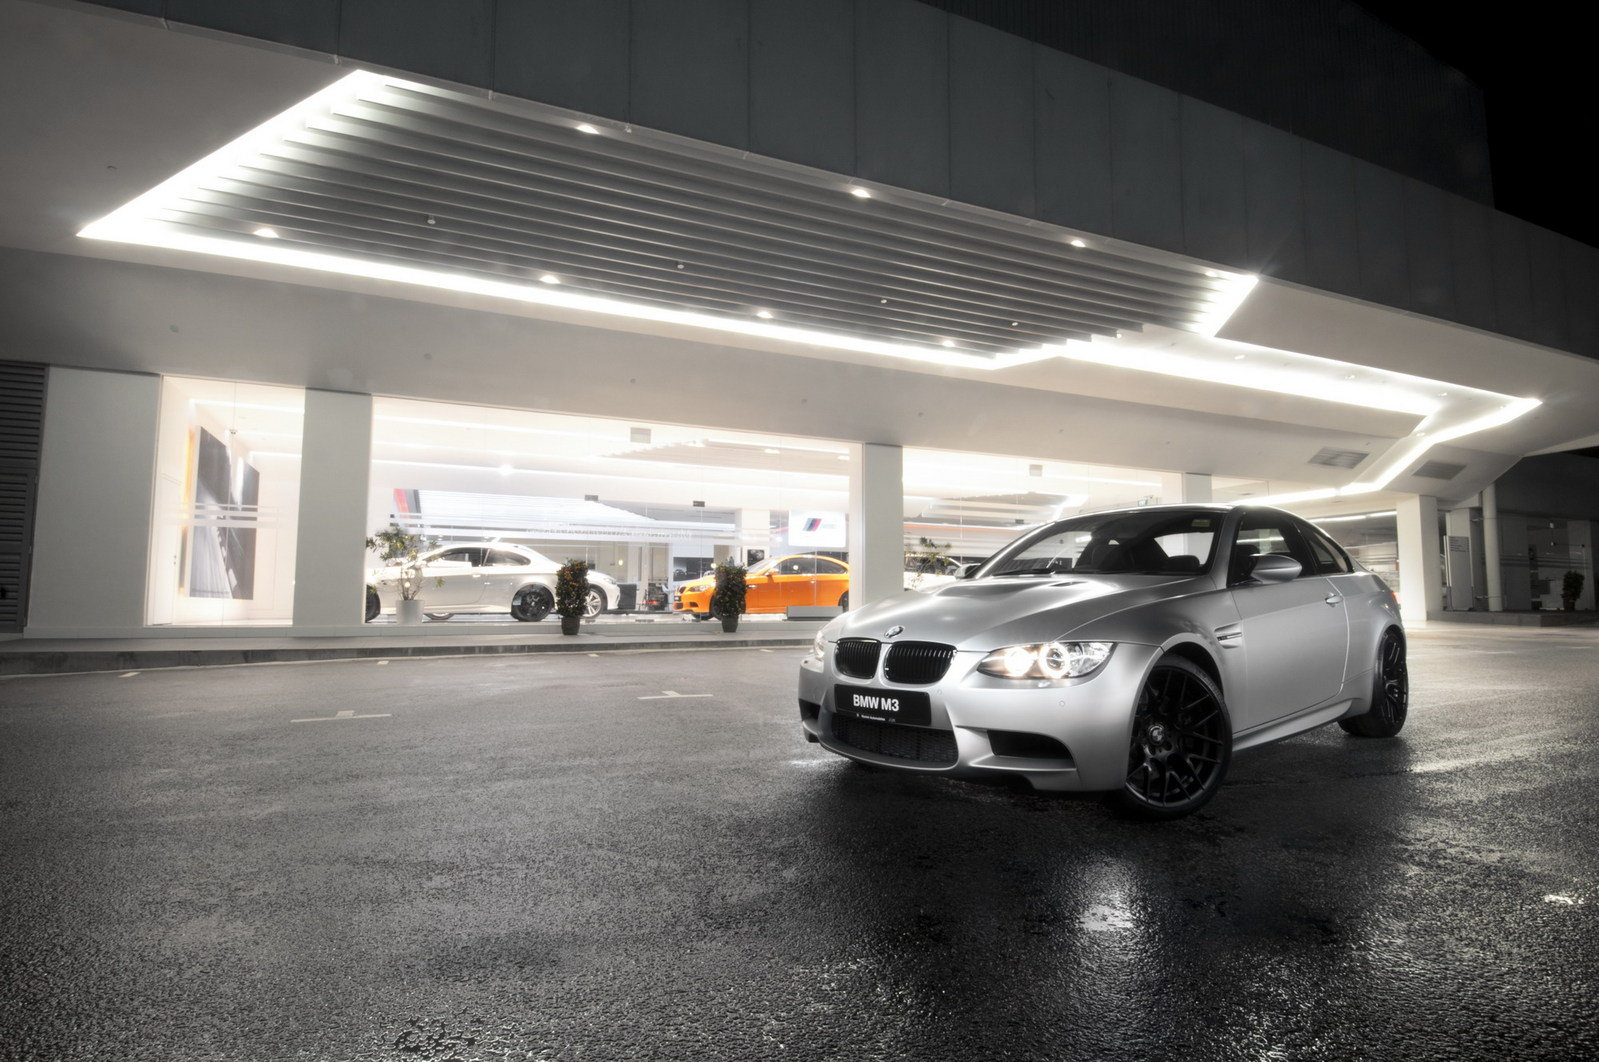 http://pictures.topspeed.com/IMG/crop/201202/bmw-m3-coupe-competi_1600x0w.jpg